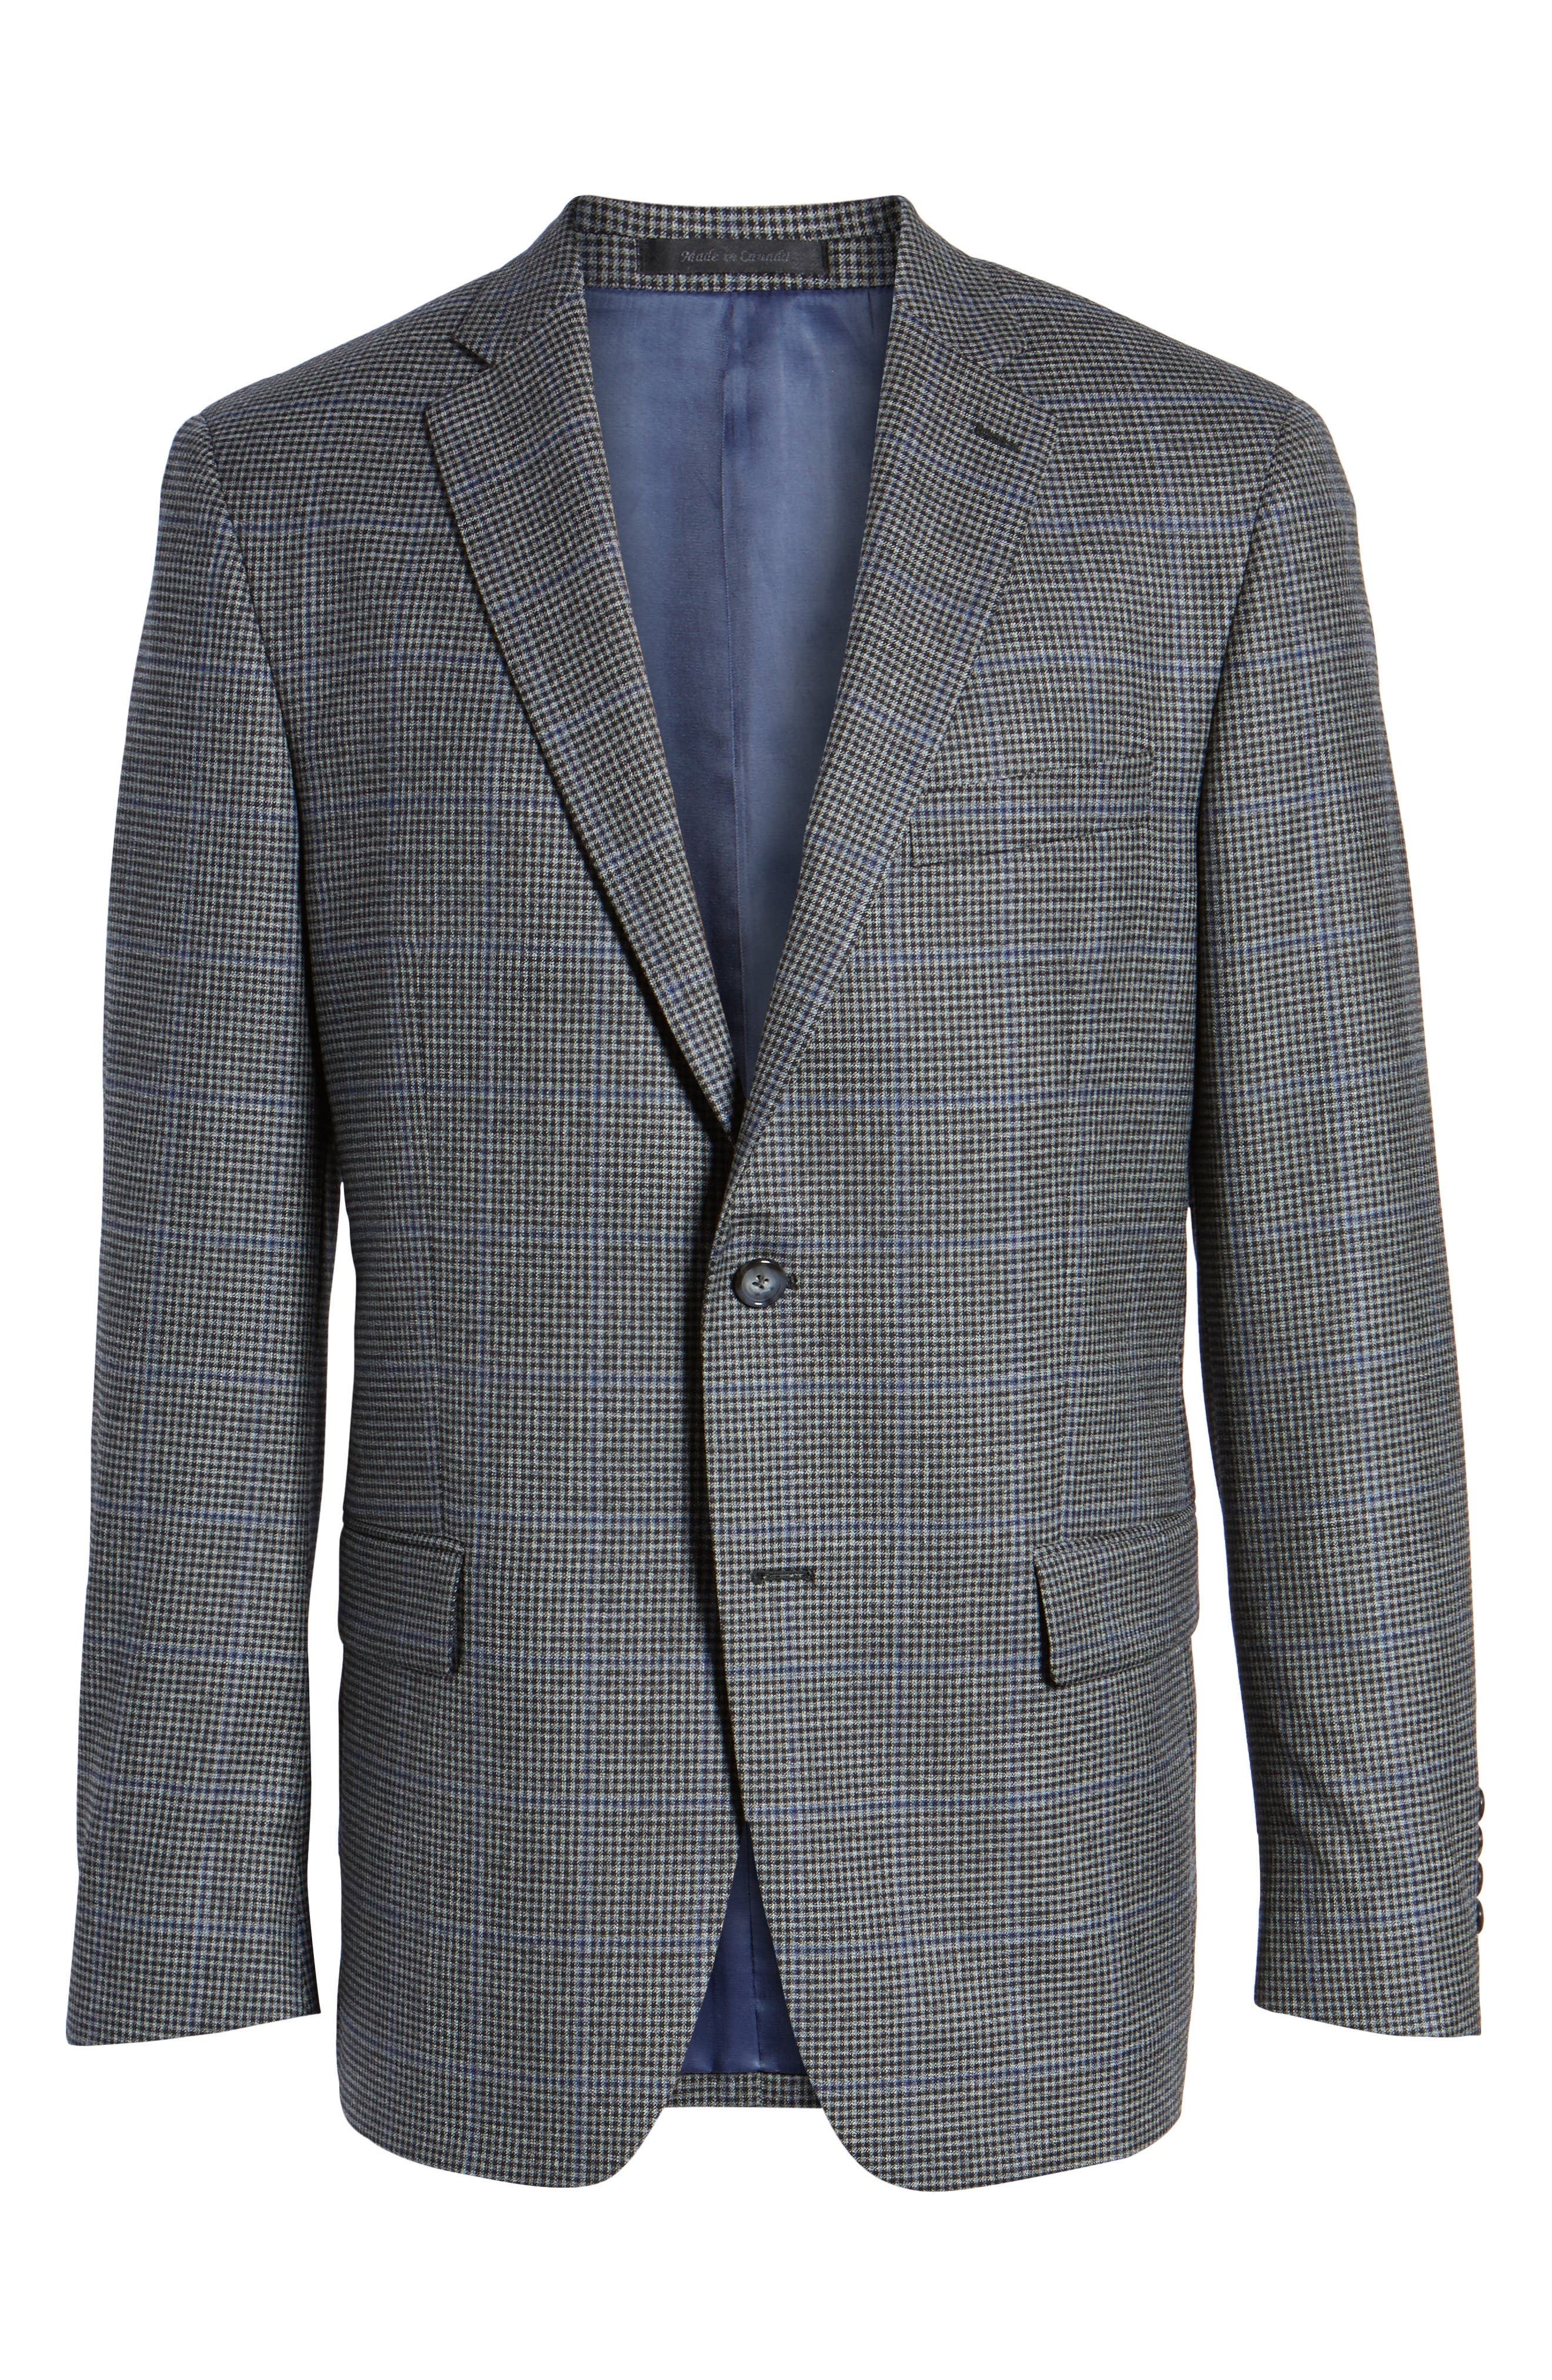 Classic Fit Stretch Check Wool Sport Coat,                             Alternate thumbnail 6, color,                             Grey